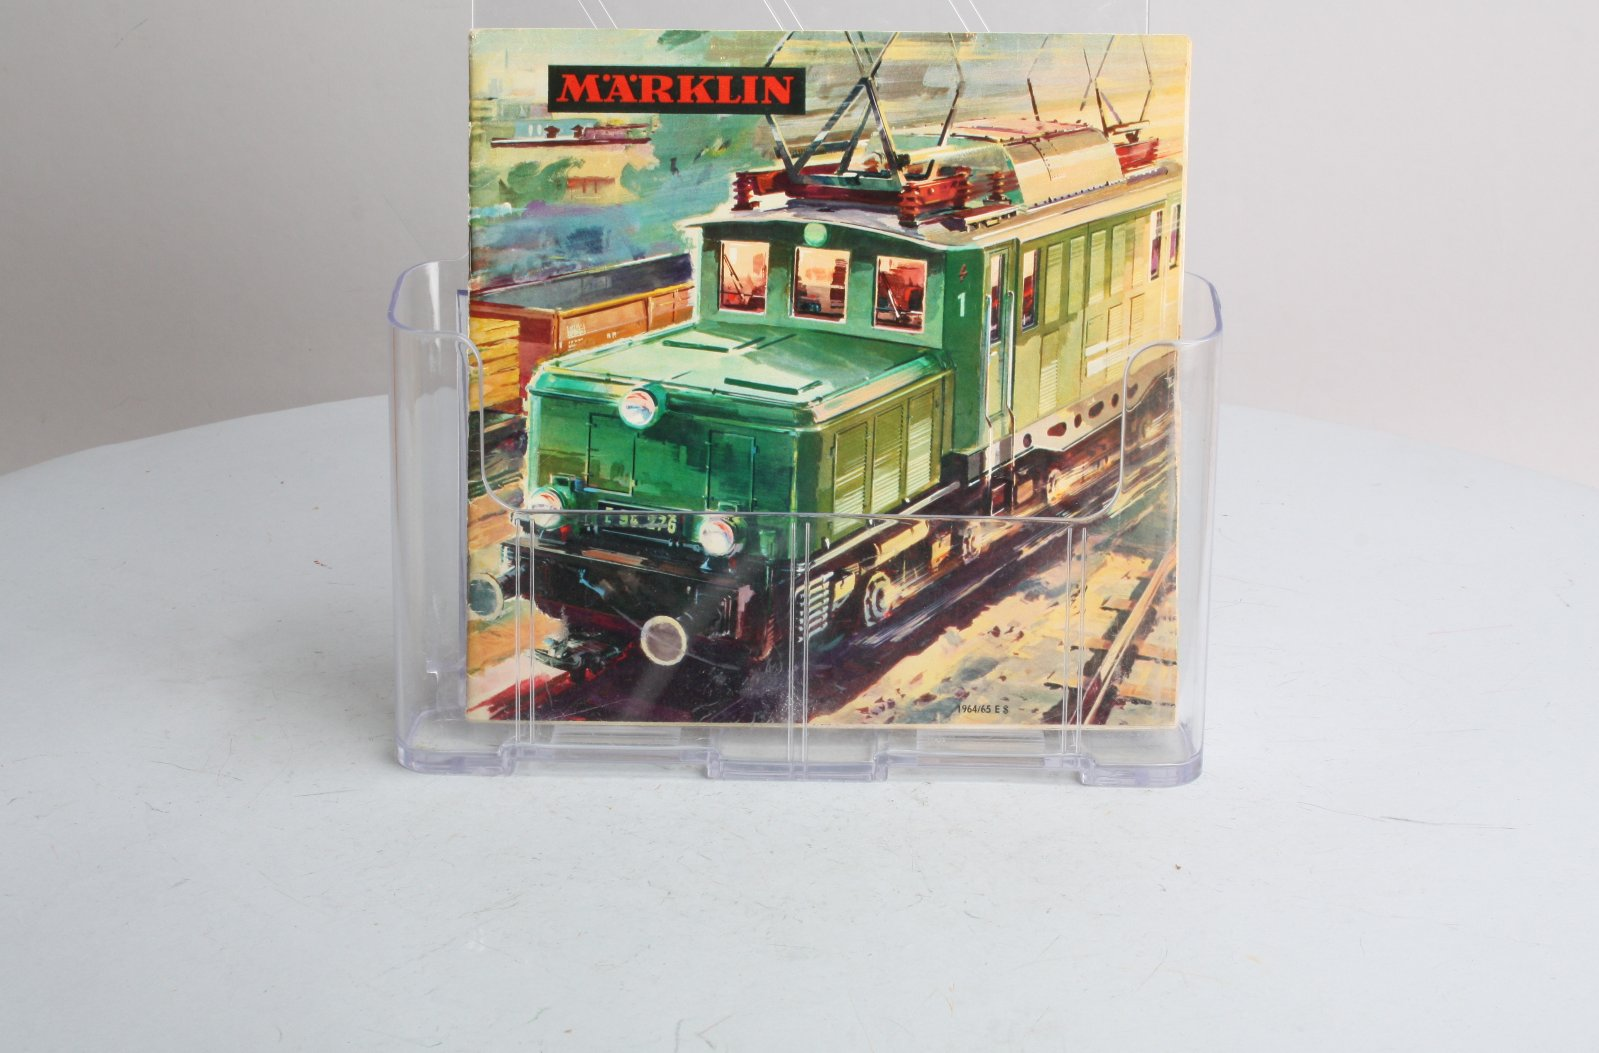 Buy Marklin 1964/65 Product Catalog | Trainz Auctions